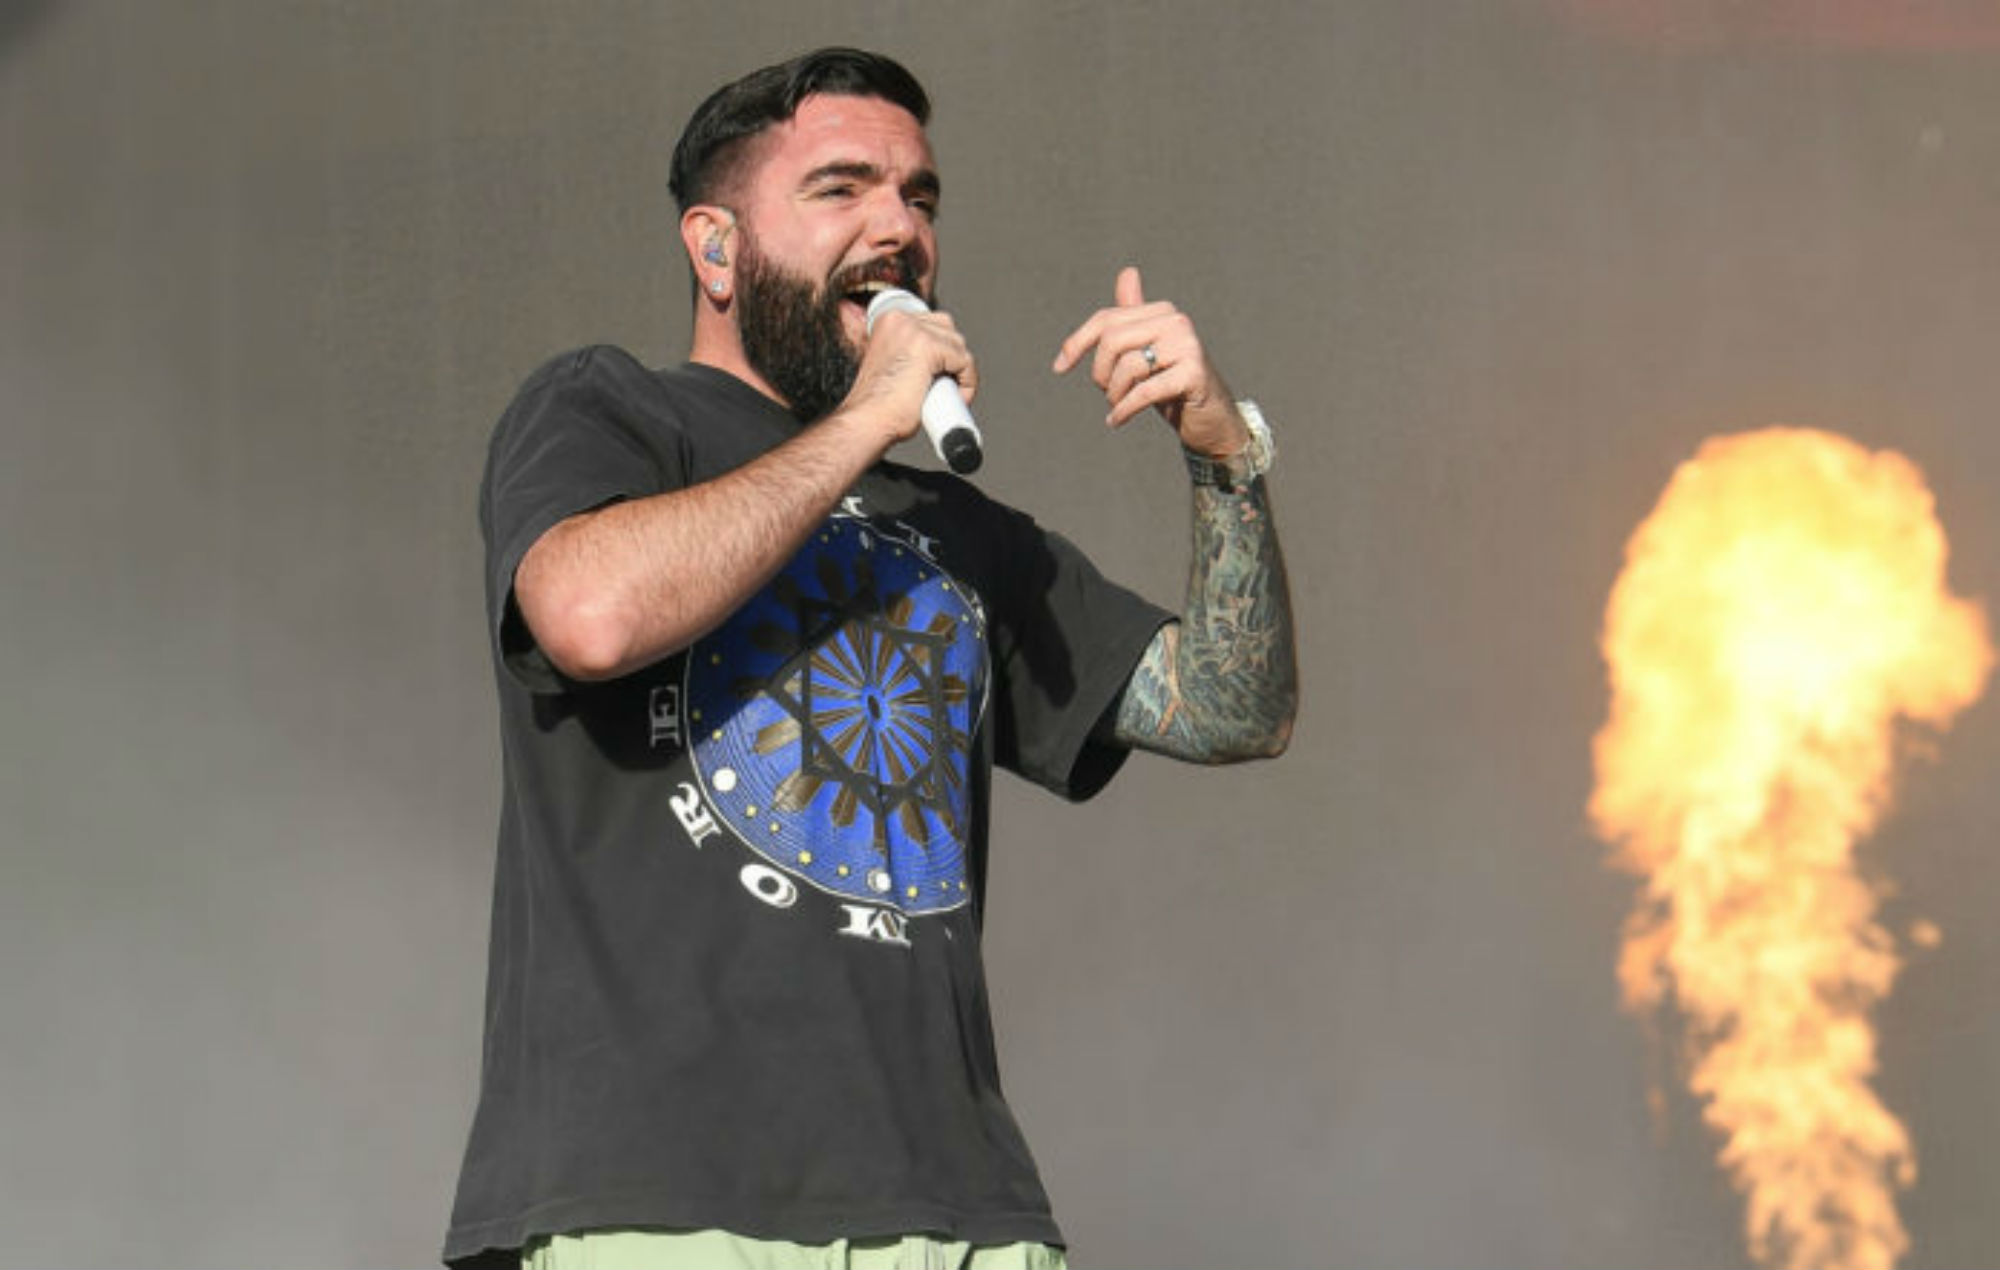 A Day To Remember's postponed UK shows have now been cancelled - EpicNews